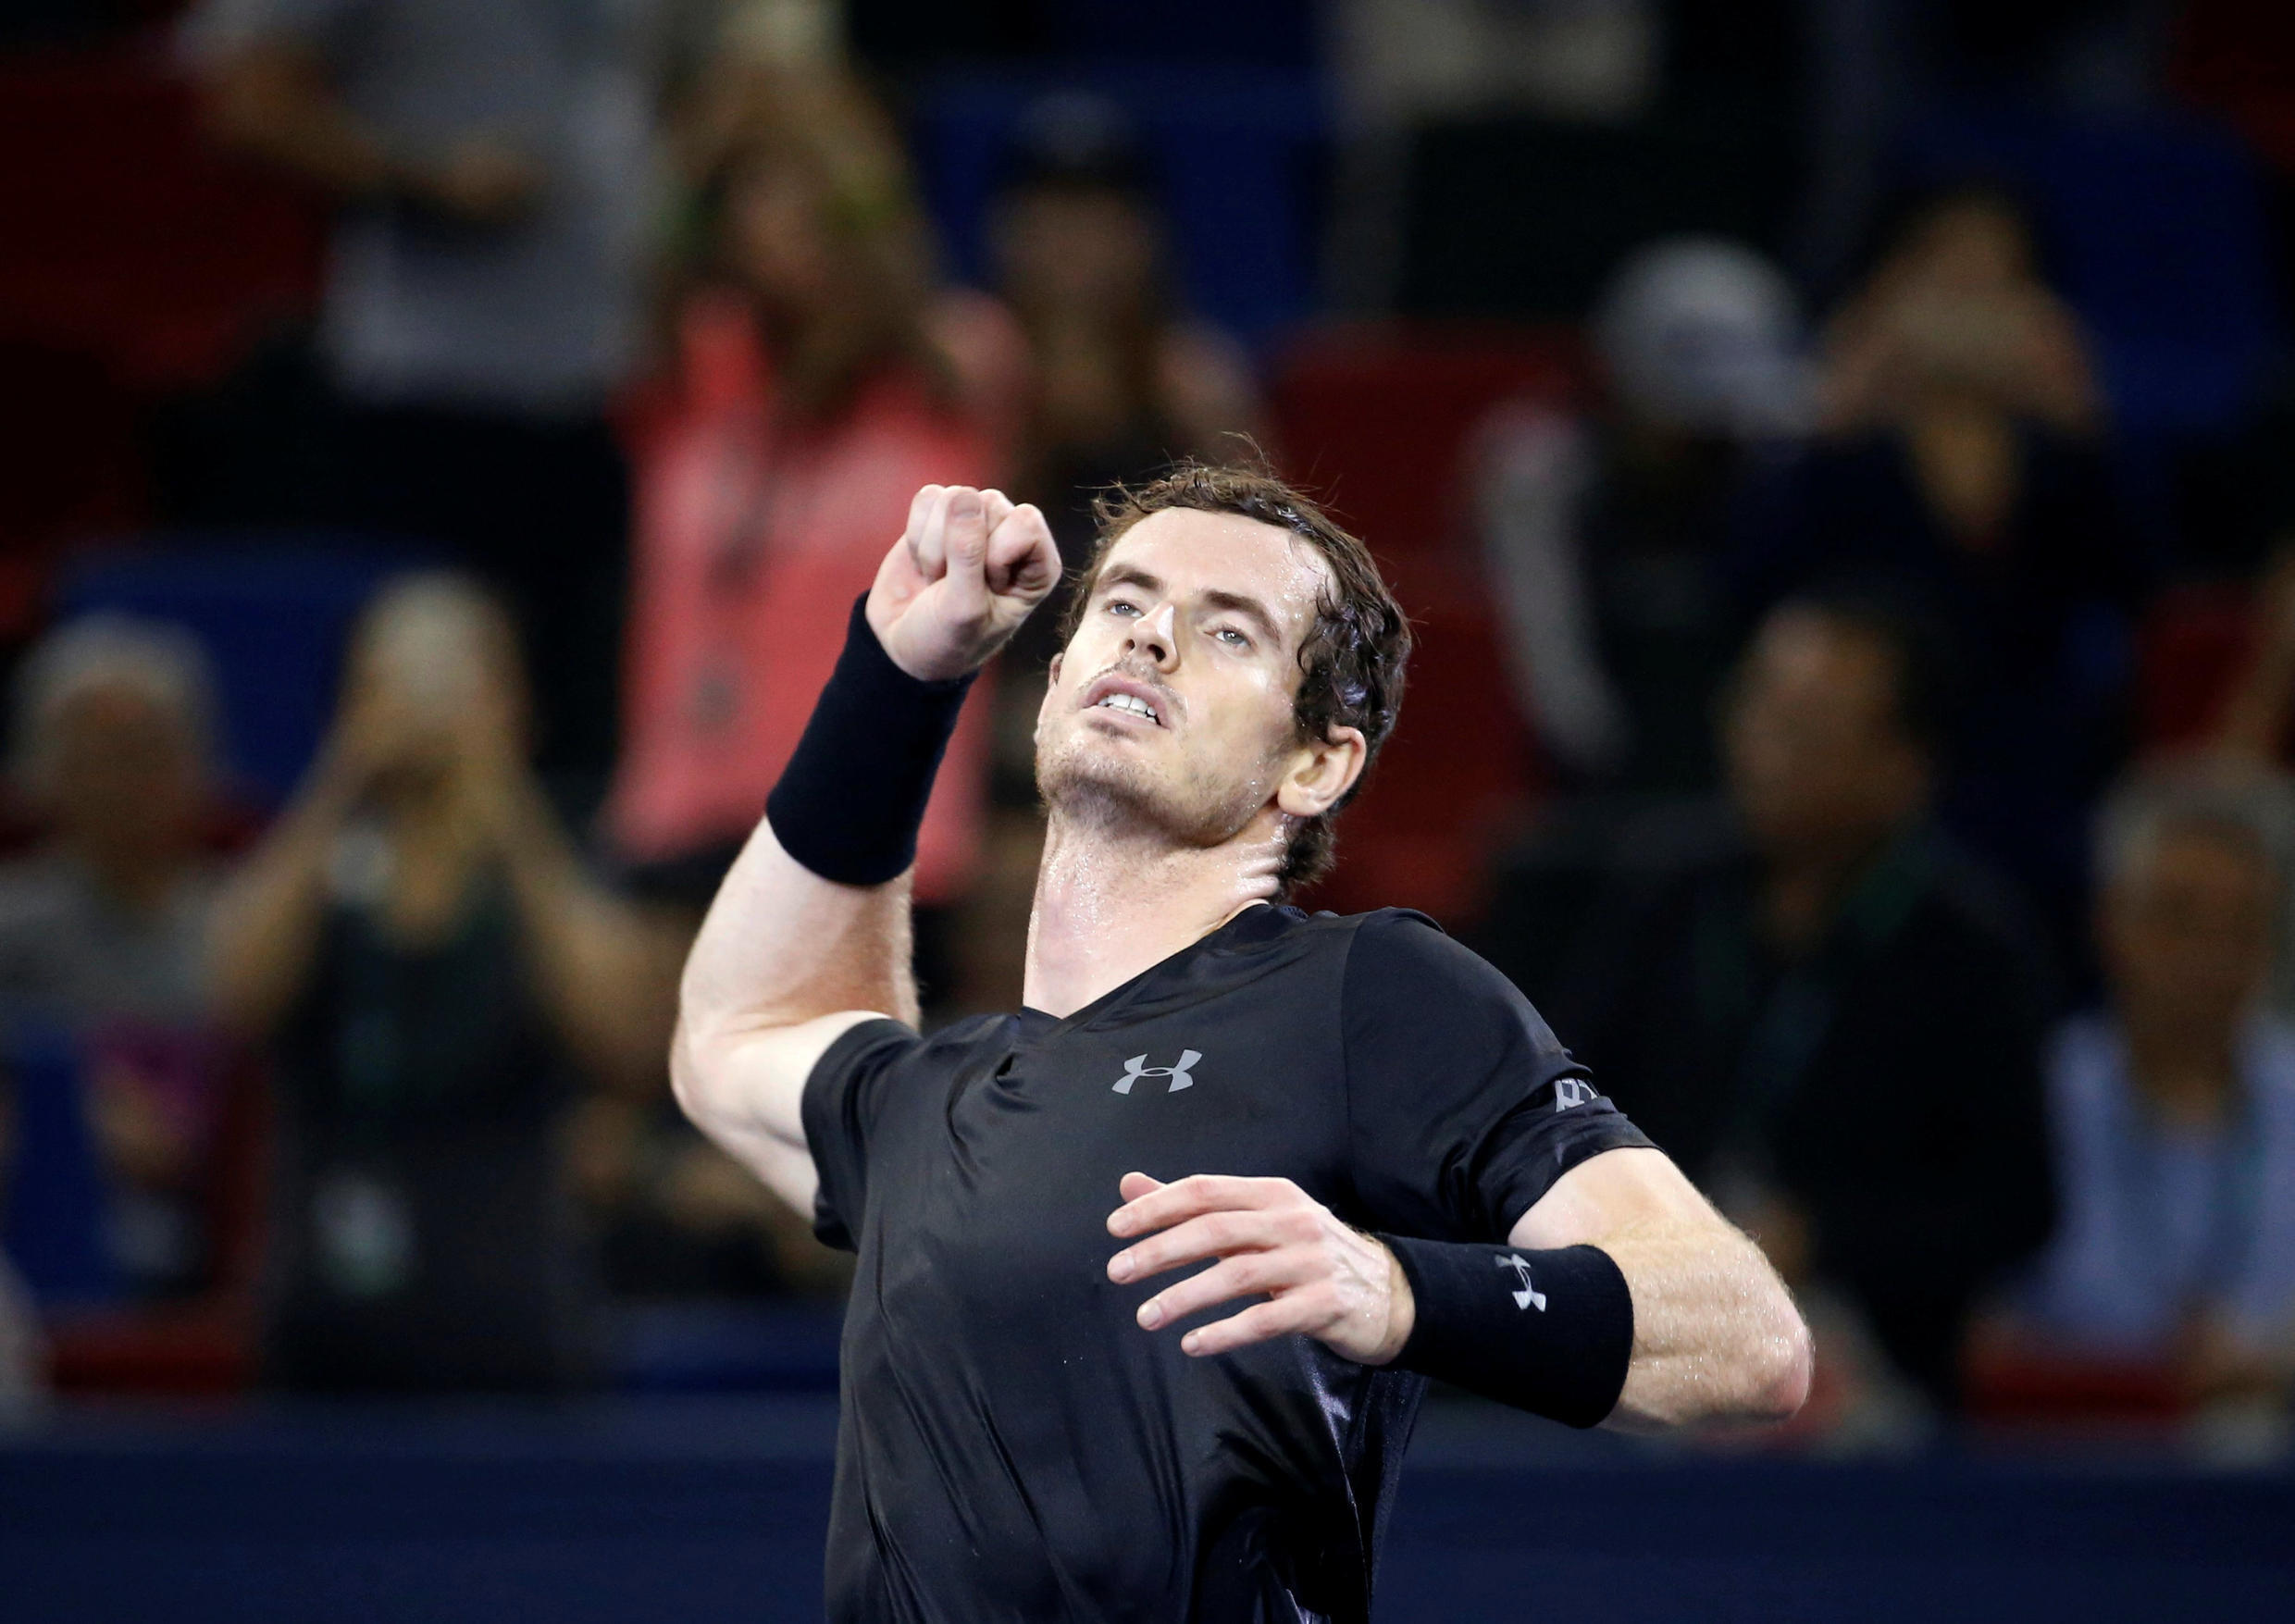 Andy Murray has a chance at the Paris Masters of reaching world number one for the first time in his career.